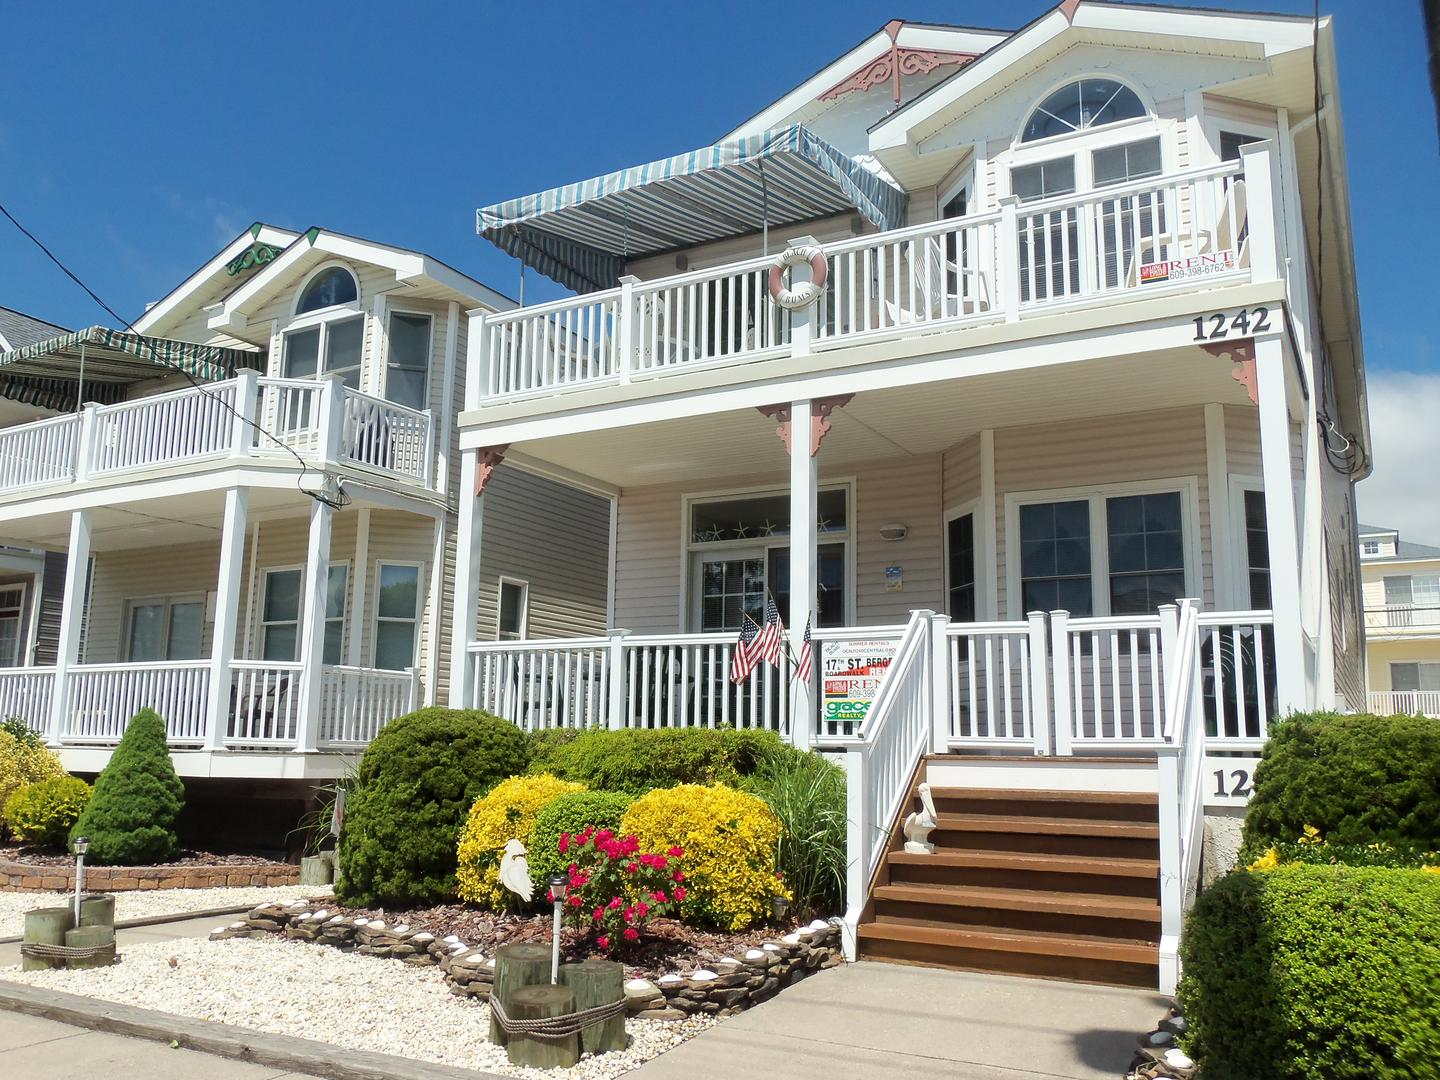 Ocean City Vacation Rentals Boardwalk (7th-14th) 1240 Central Avenue